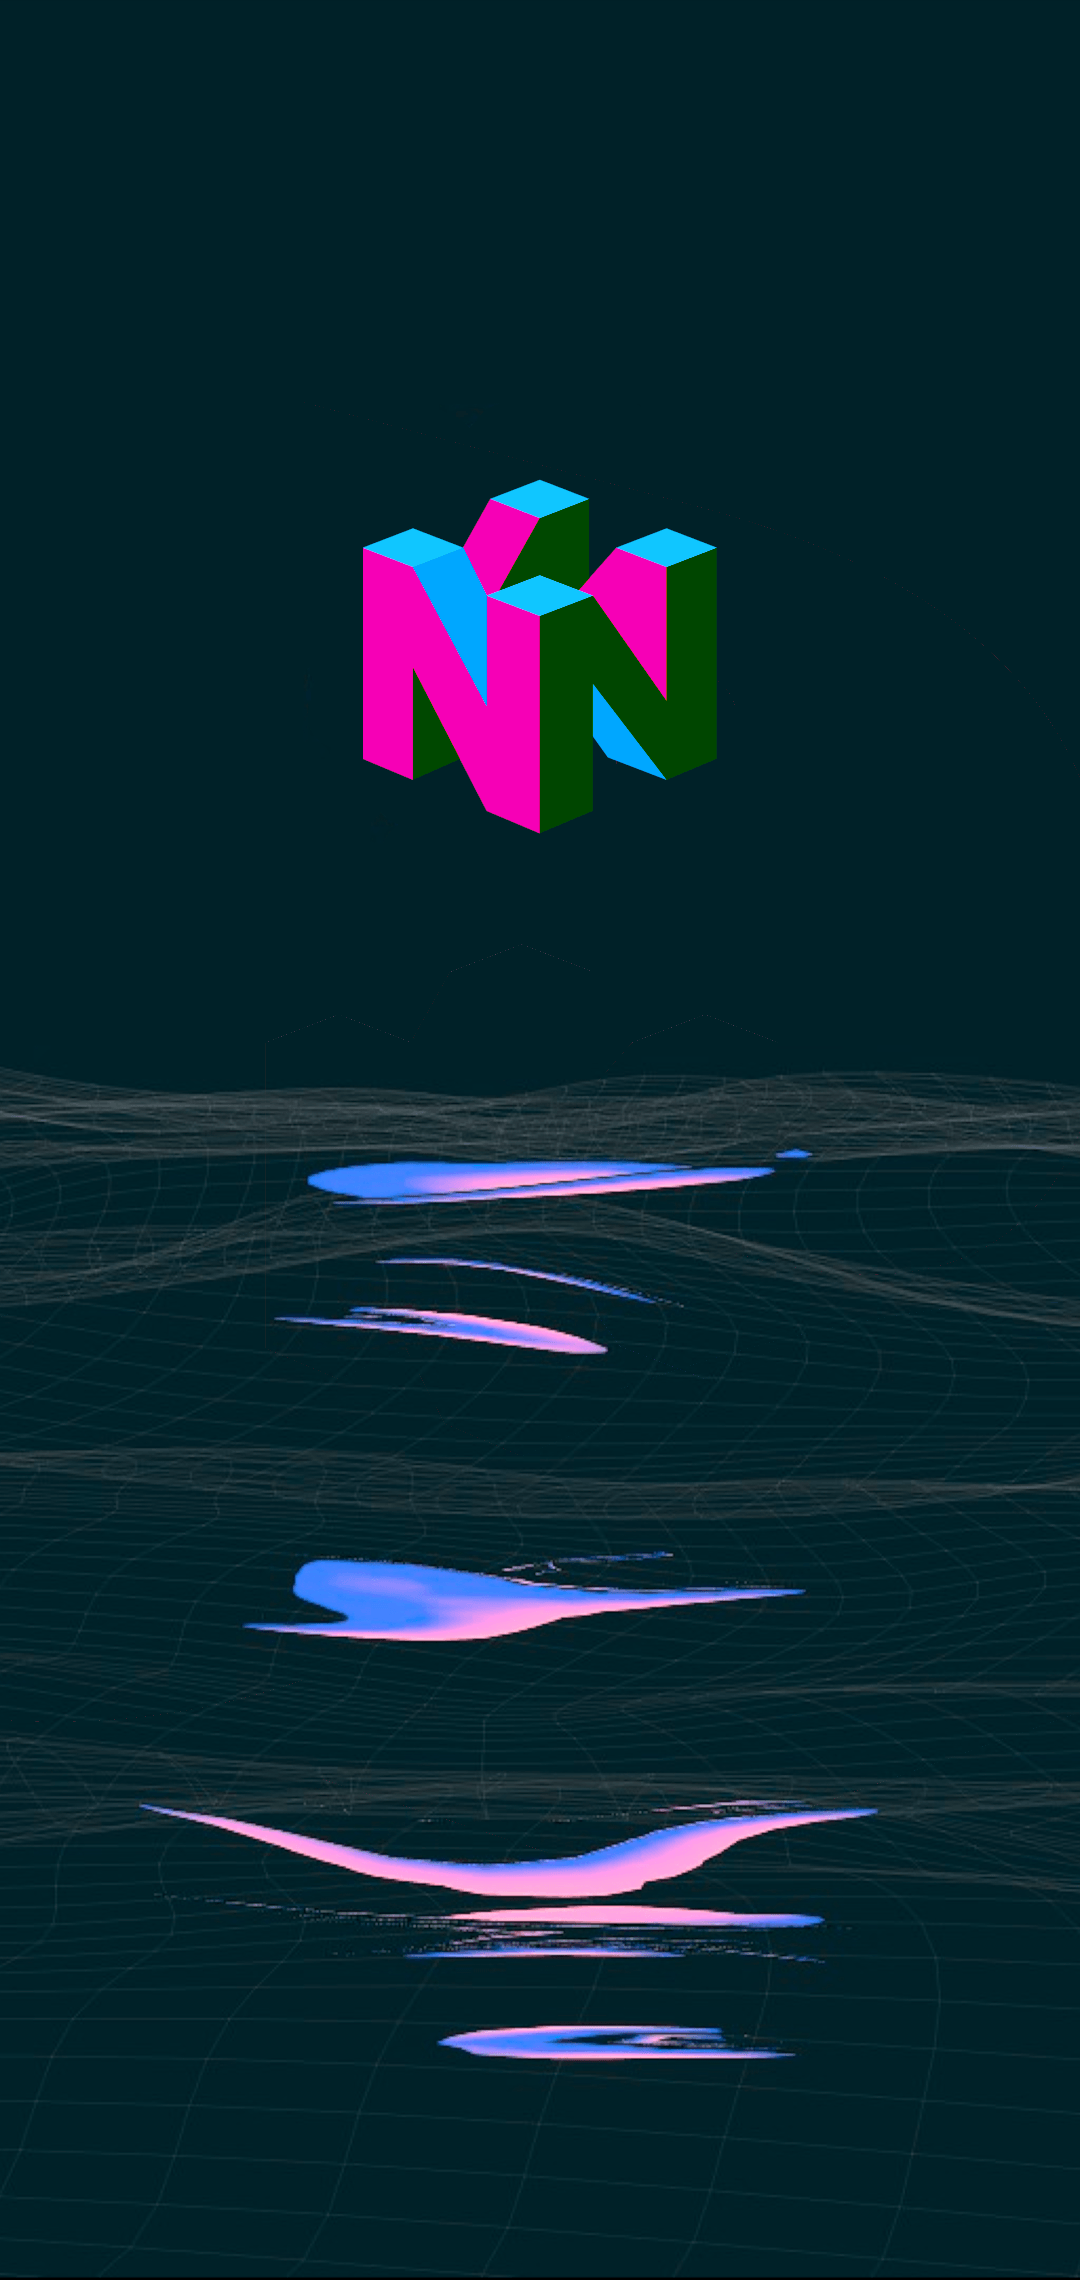 Vaporwave/sythwave you name it wallpapers for OnePlus 6. Resolution